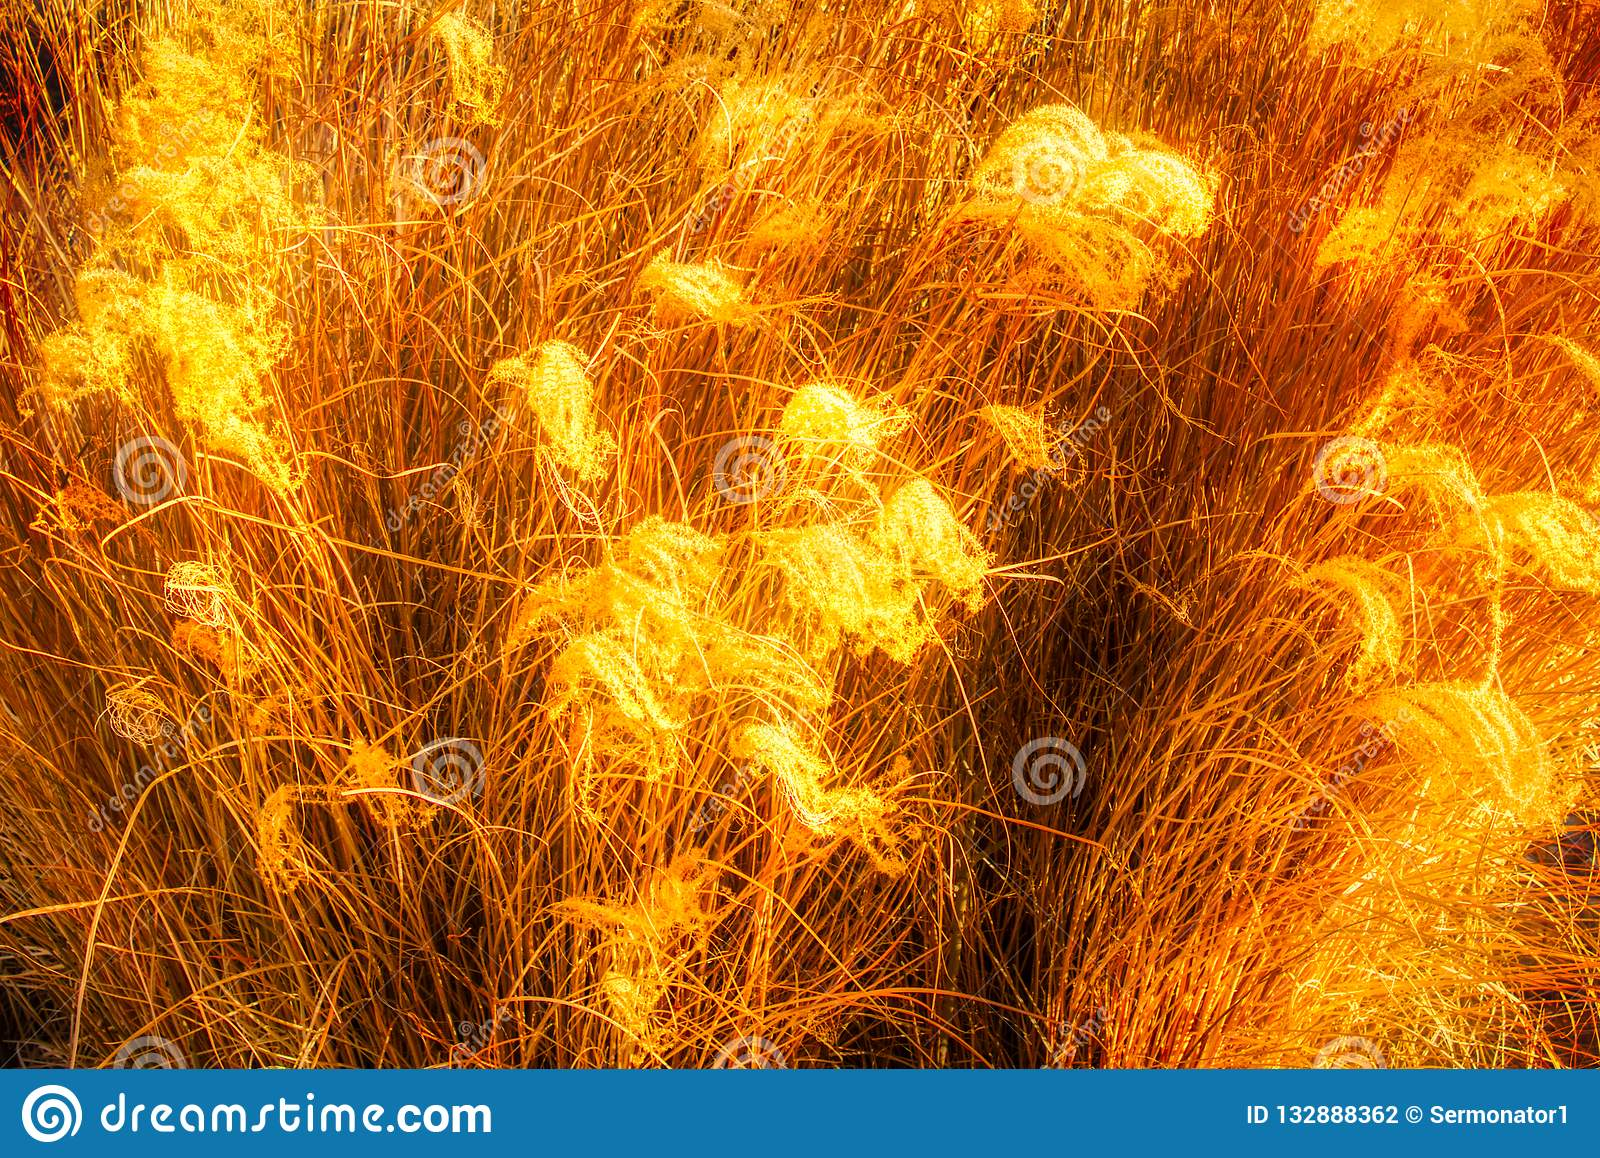 Amber Waves Of Grain Or Saw Grass Glowing In The Sun Stock Photo